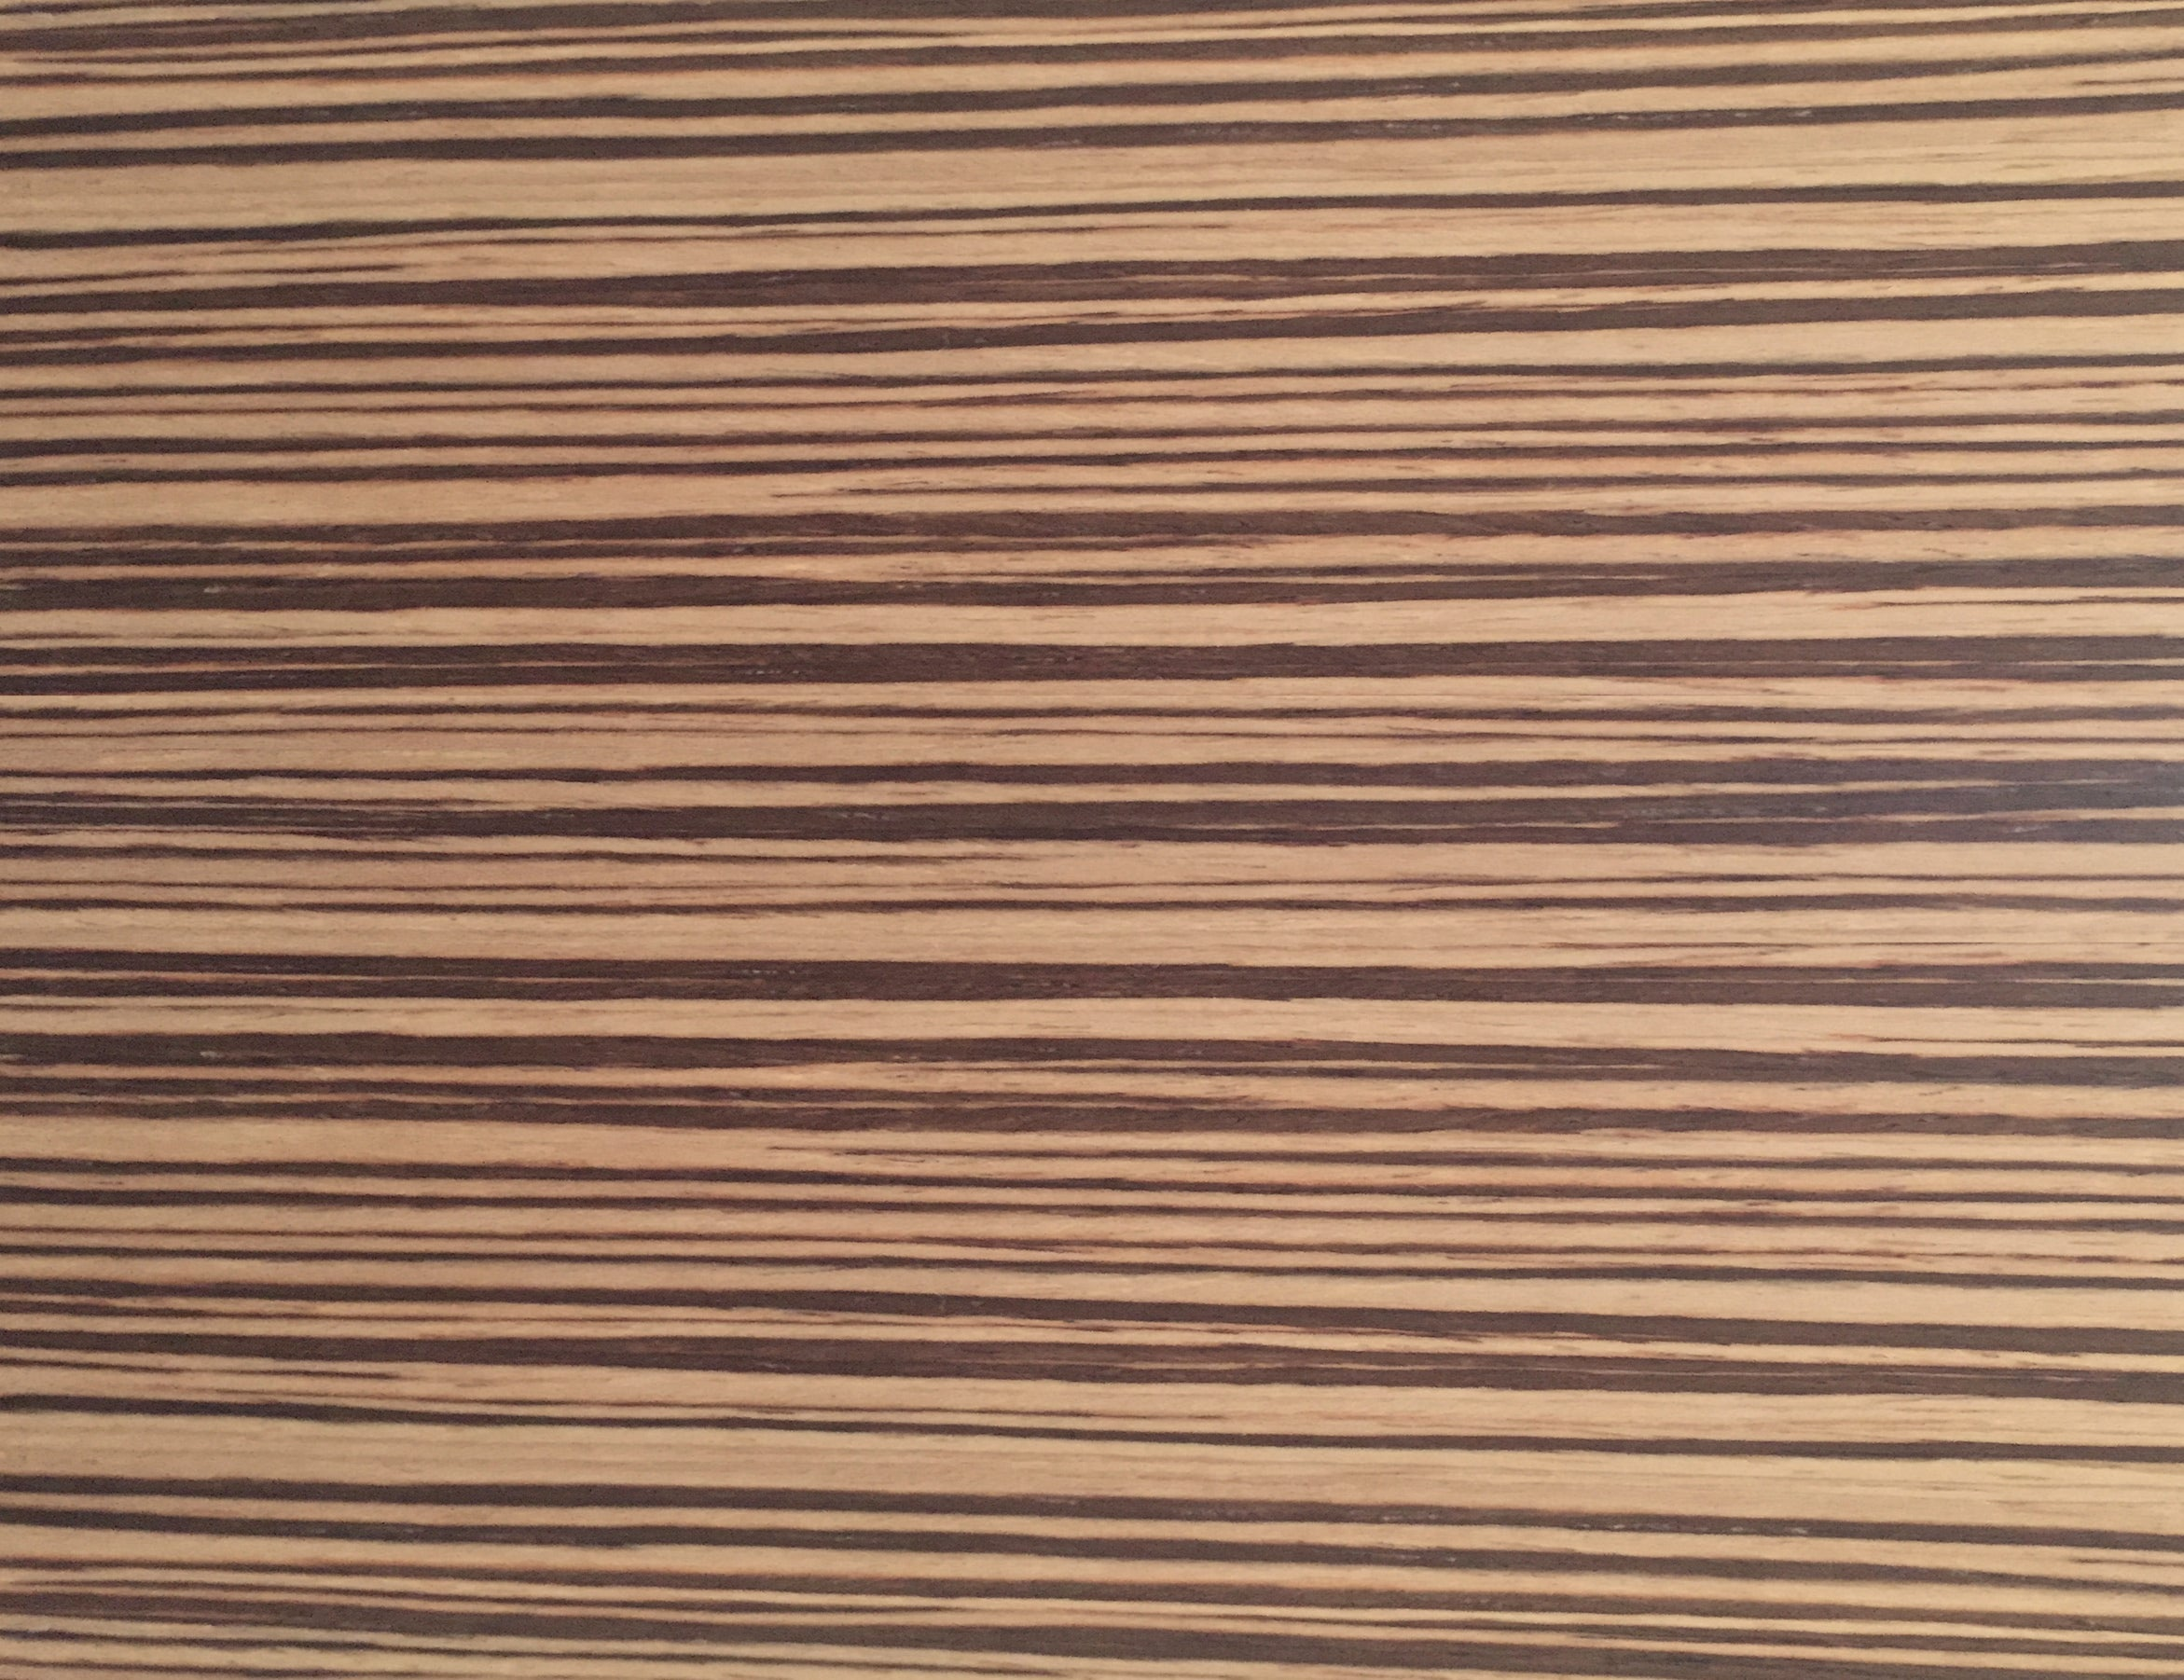 zebrawood sample texture